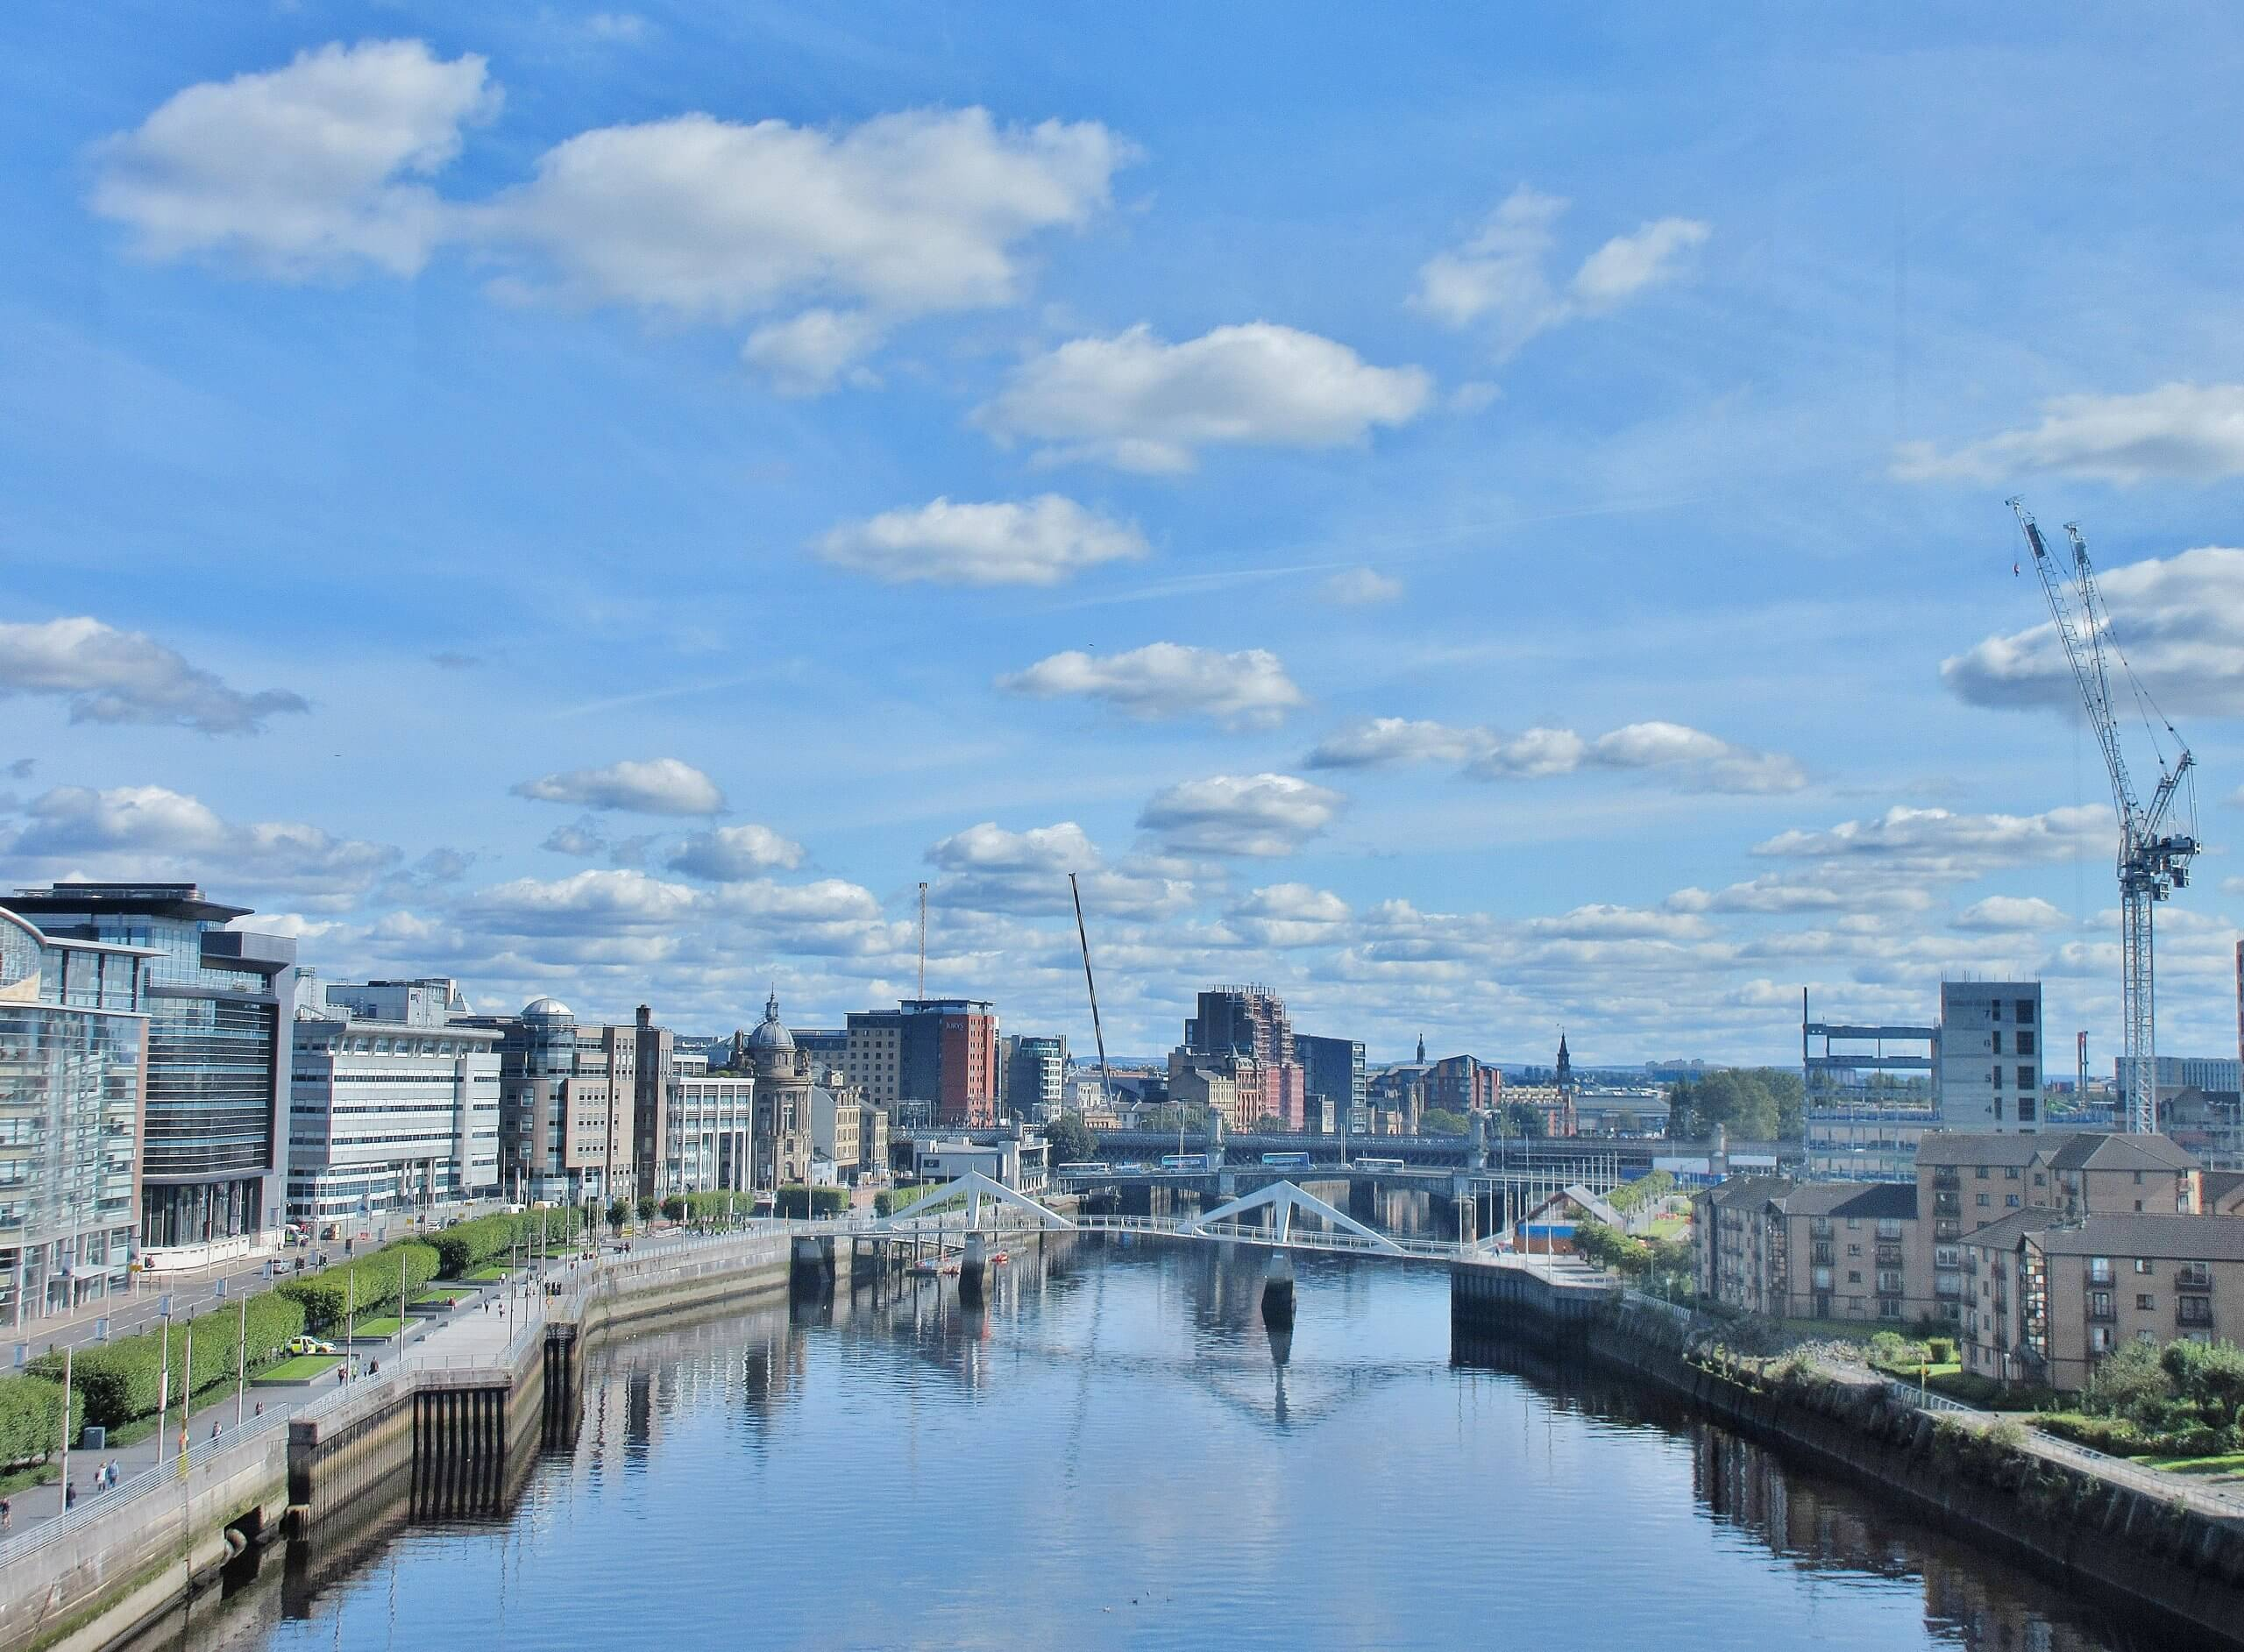 Aerial view of River Clyde, Glasgow, Scotland, UK